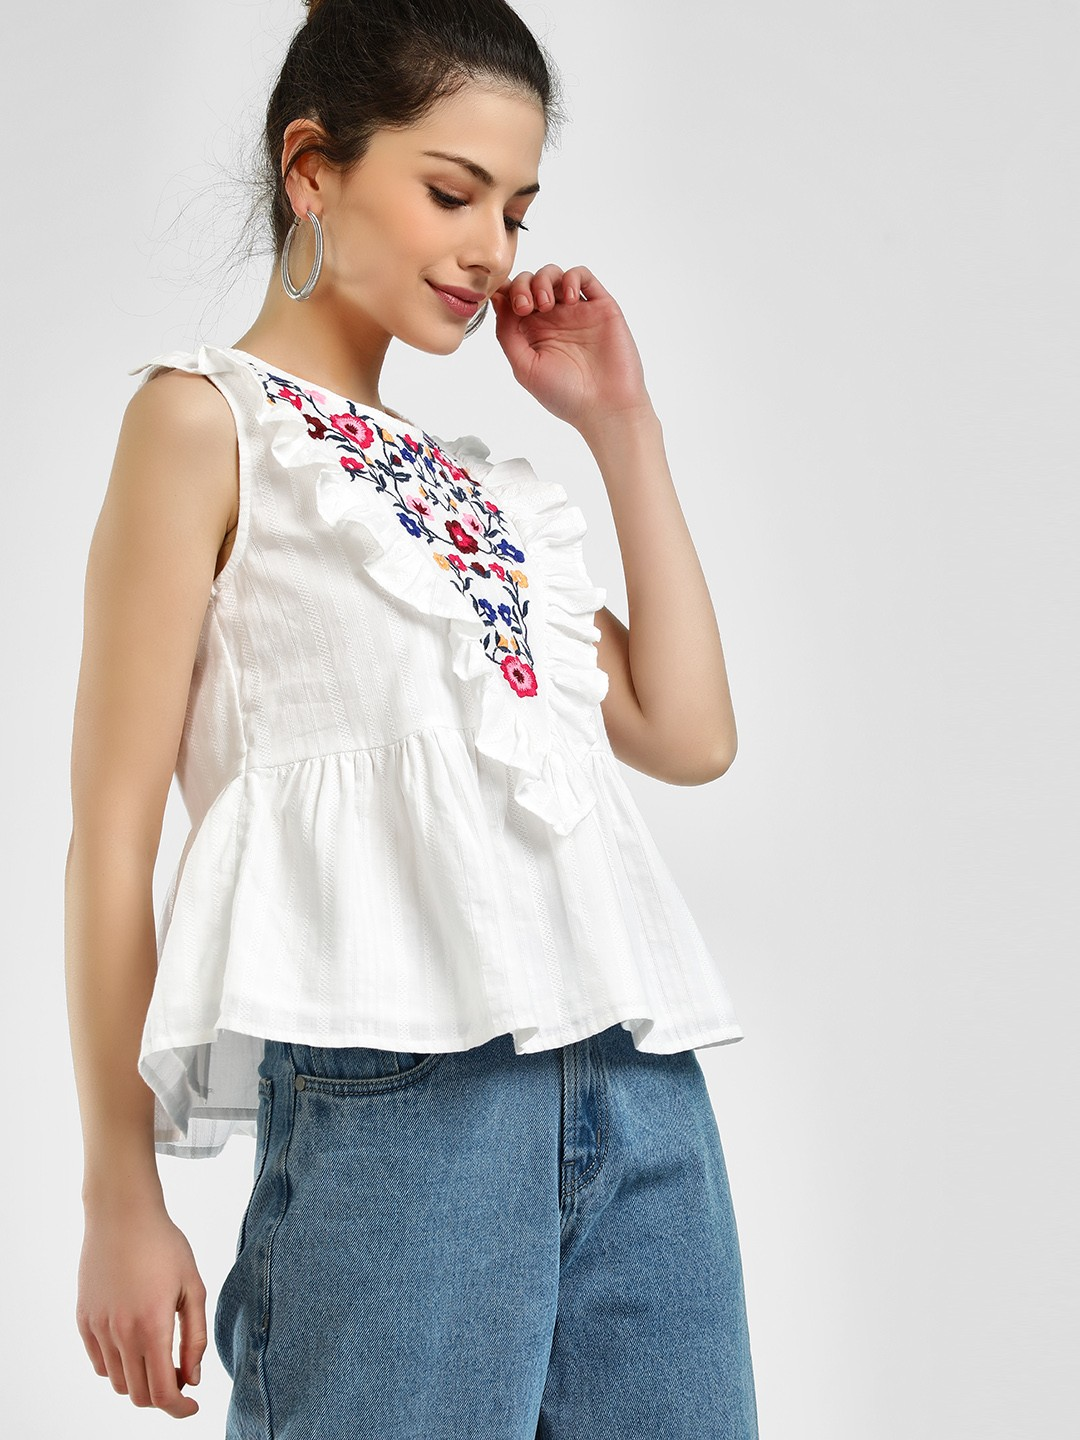 Sbuys White Ruffle Floral Embroidered Sleeveless Blouse 1